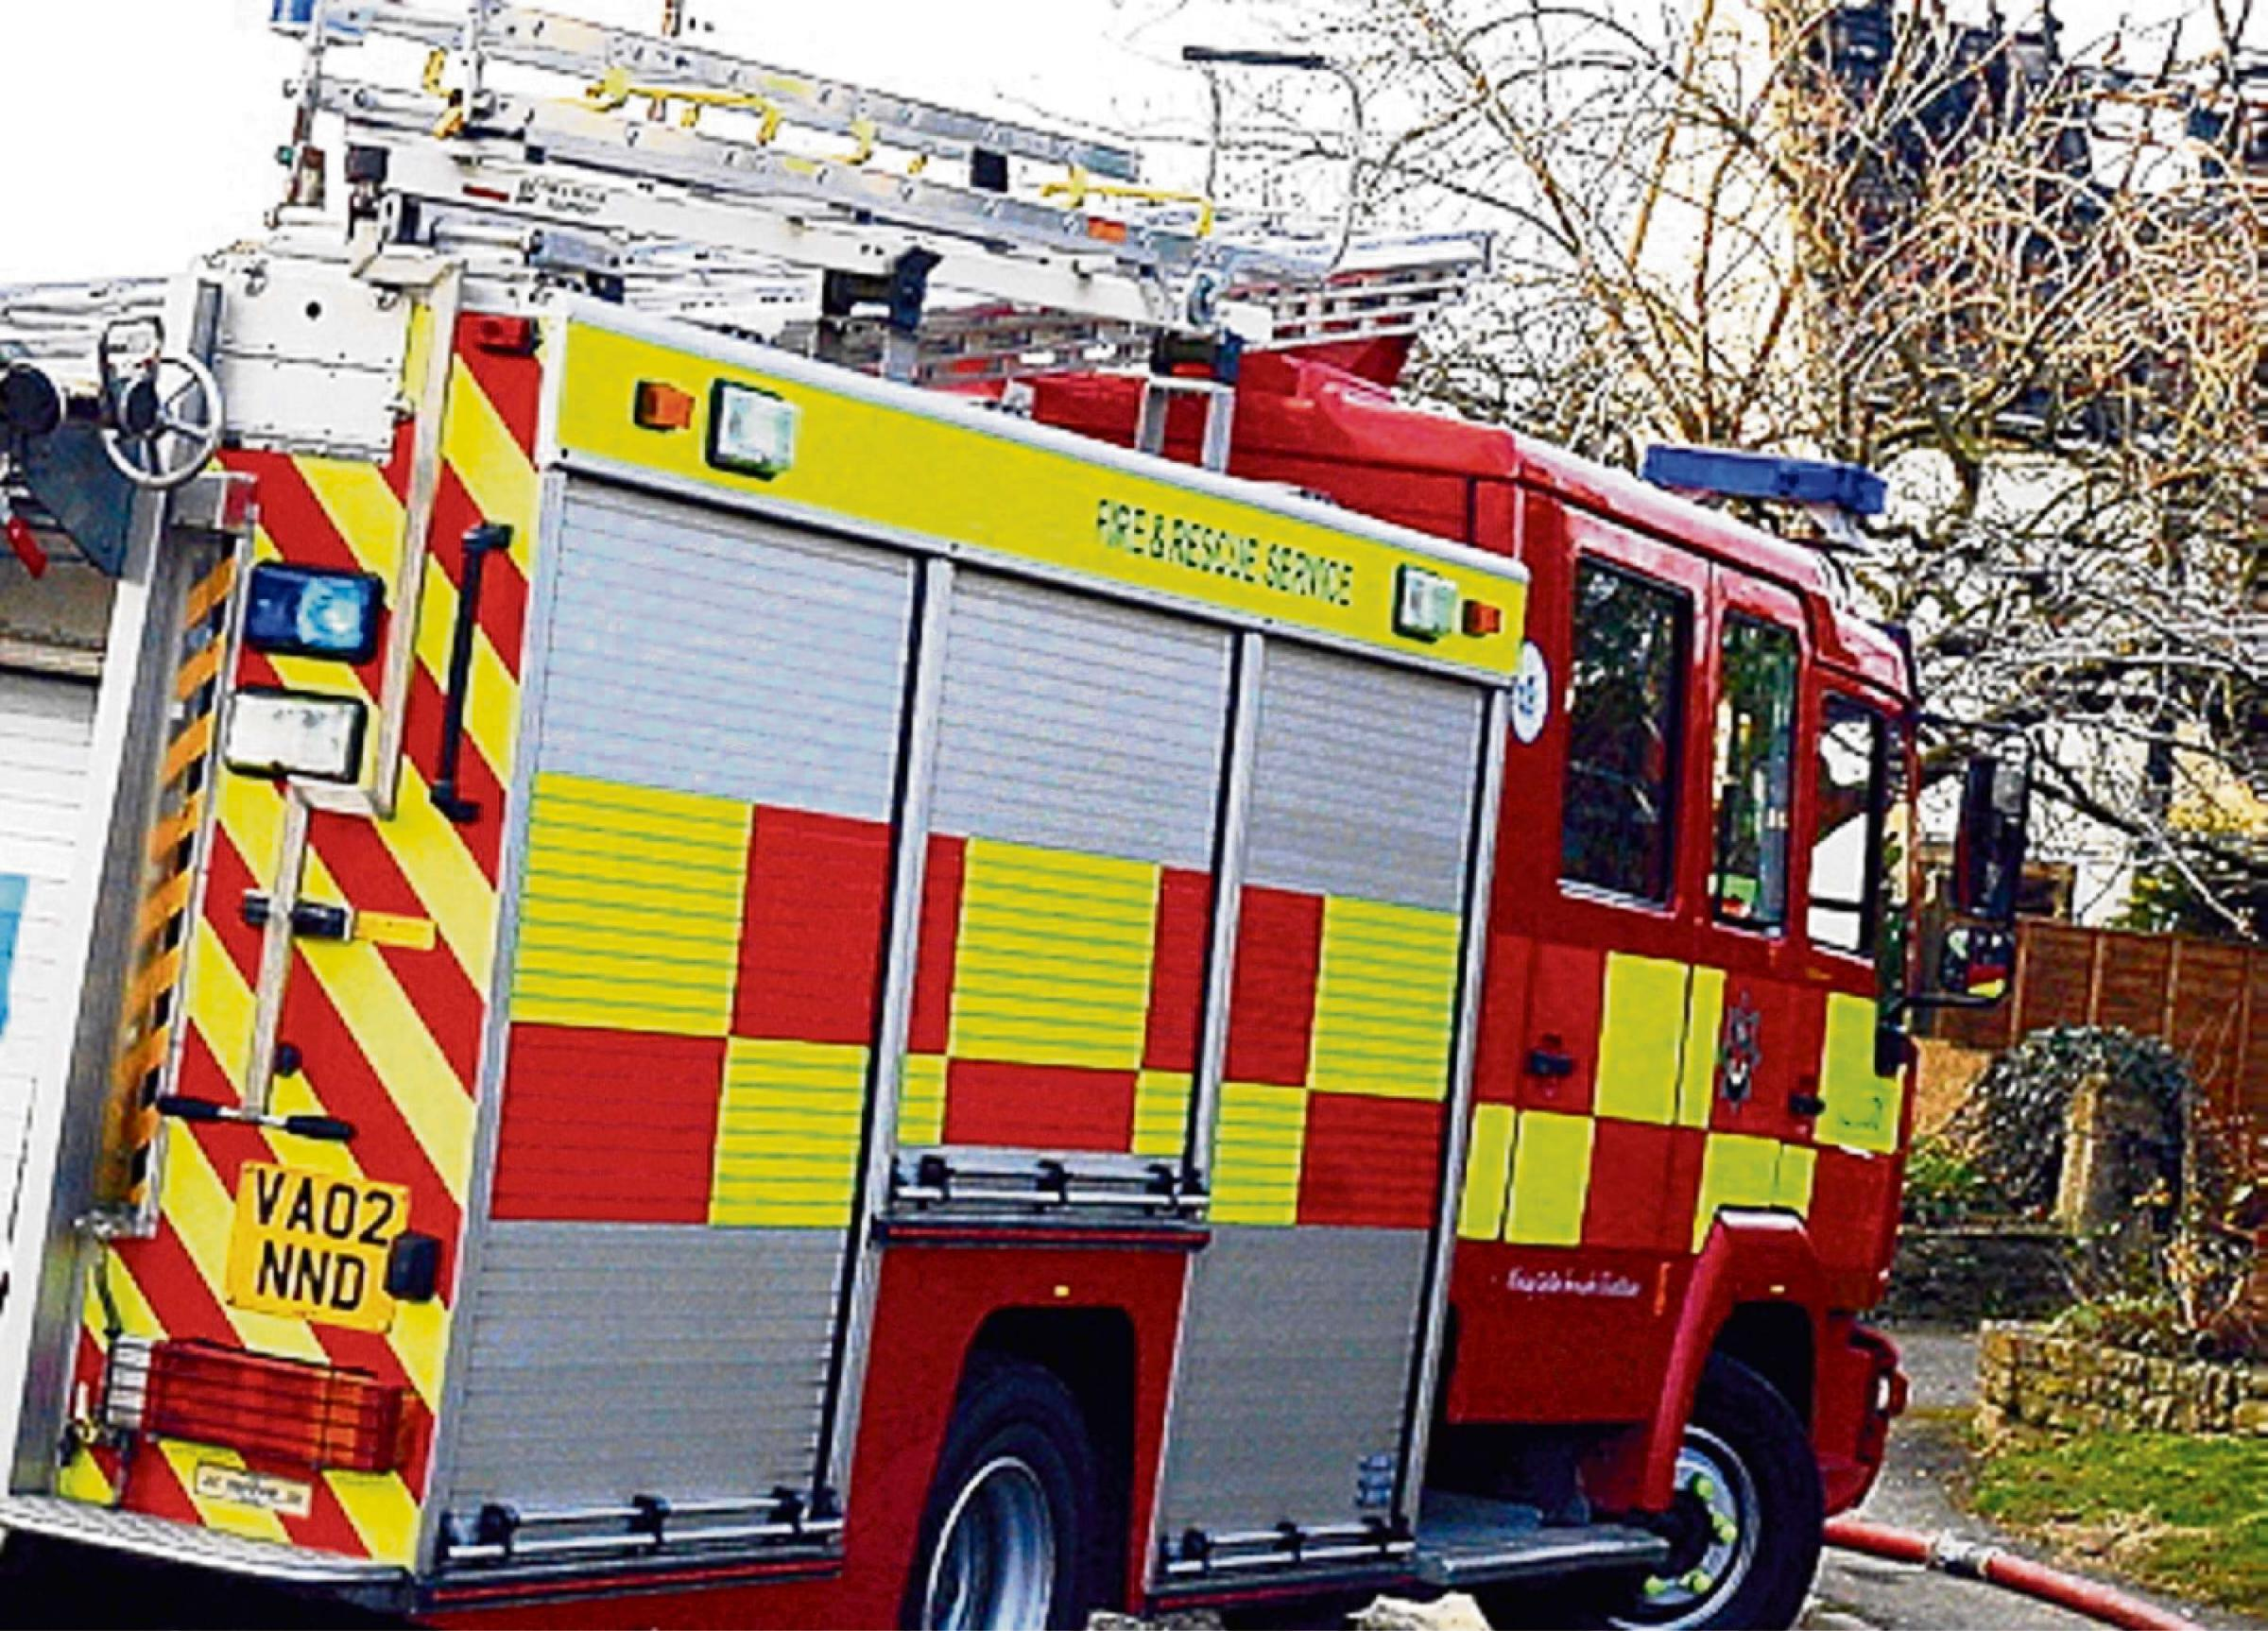 Avon Fire and Rescue Service has cut its carbon emissions